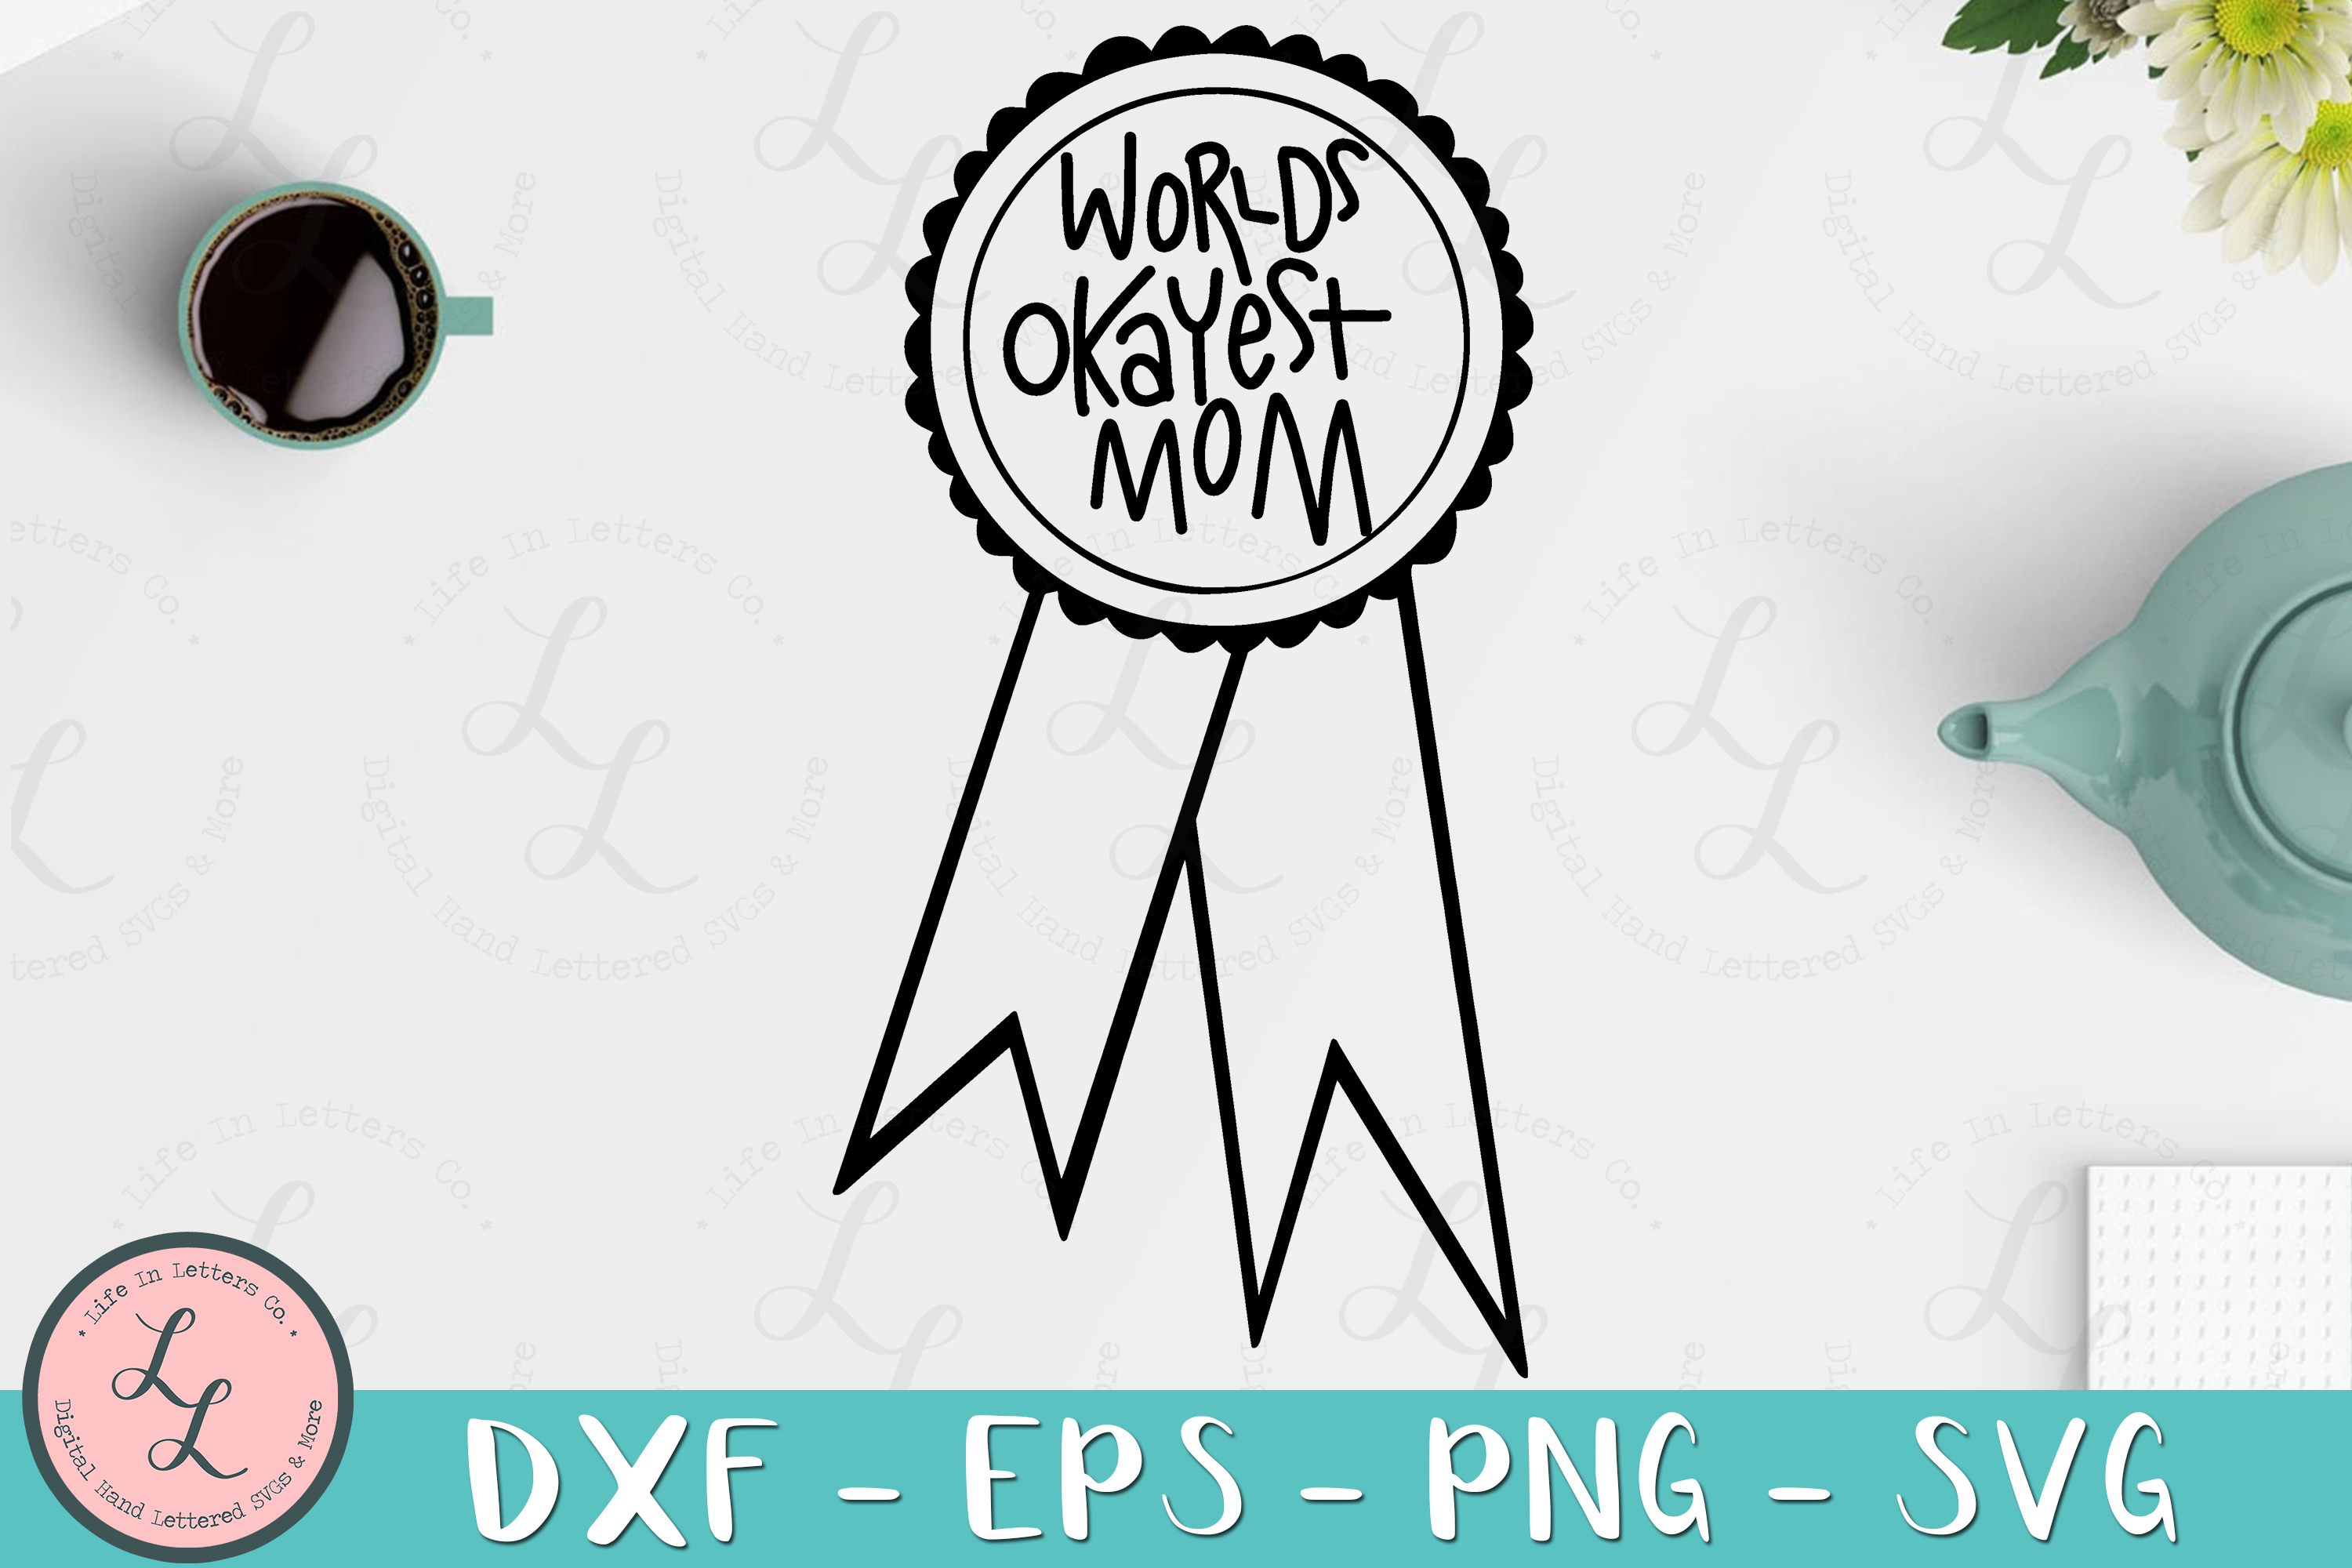 World's Okayest Mom Ribbon- Cut File, SVG, PNG, EPS, DXF example image 1